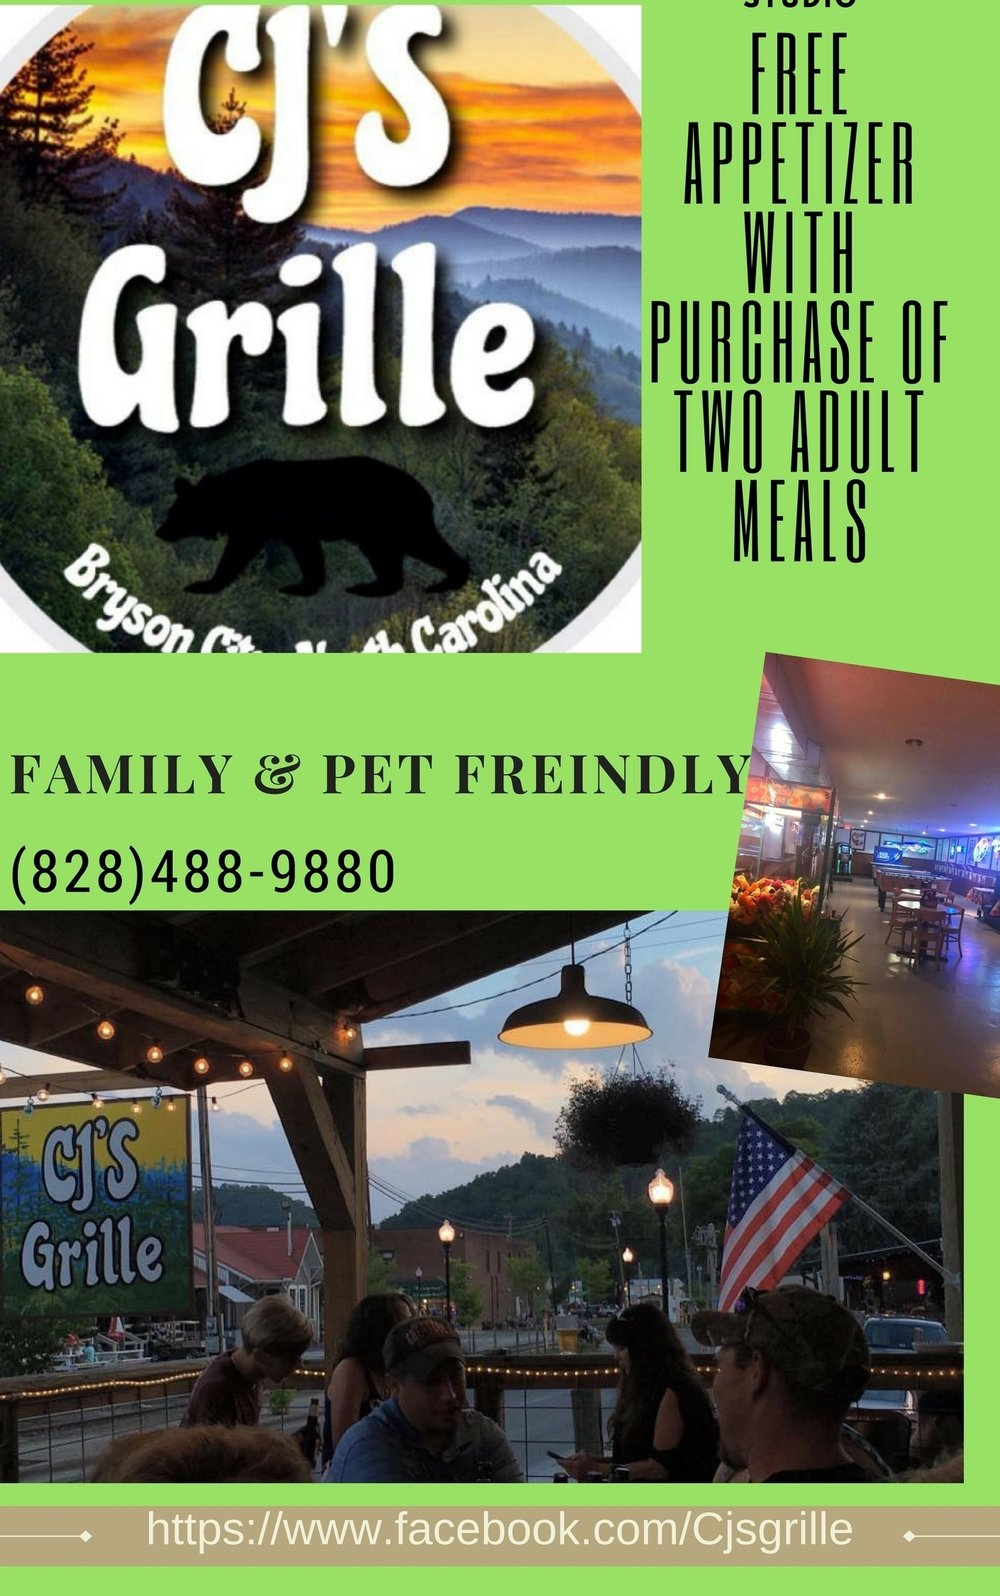 CJ's Grille. FREE appetizer with purchase of two adult meals